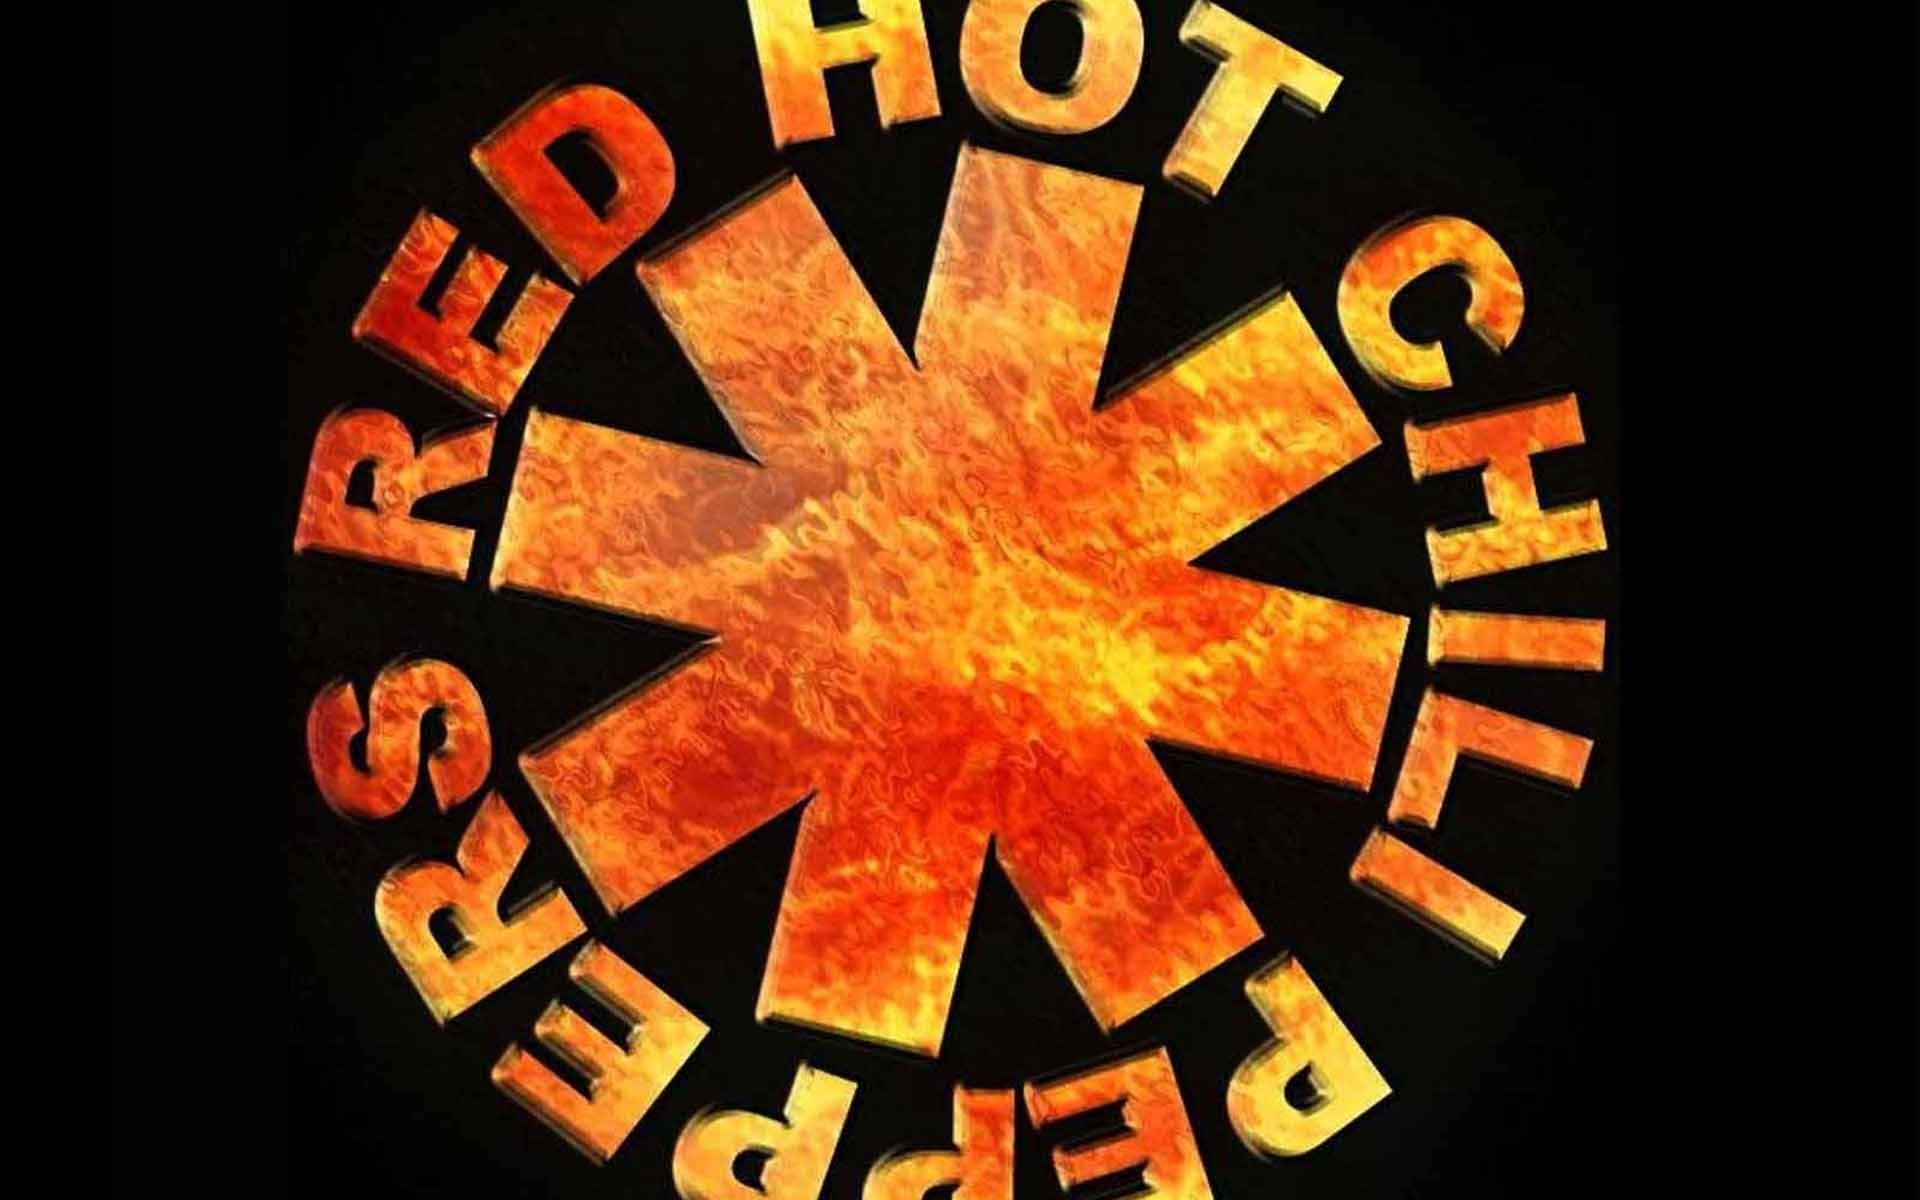 20 red hot chili peppers hd wallpapers background images red hot chili peppers hd wallpaper background image id339111 biocorpaavc